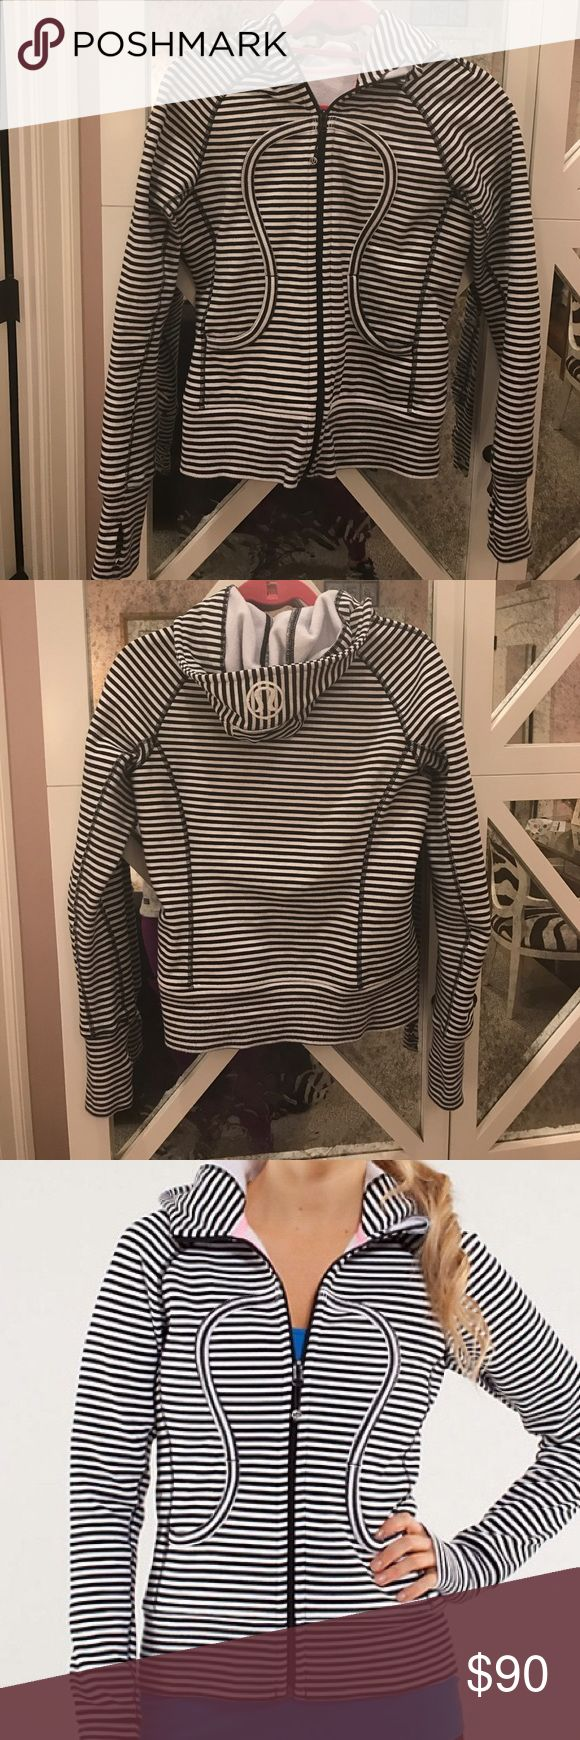 Lululemon Black and White strip Scuba Hoodie Black and white striped Lululemon Scuba hoodie. Lightly worn, only a few wears. Still feels like new. Pink piping accent. Size 4 lululemon athletica Tops Sweatshirts & Hoodies